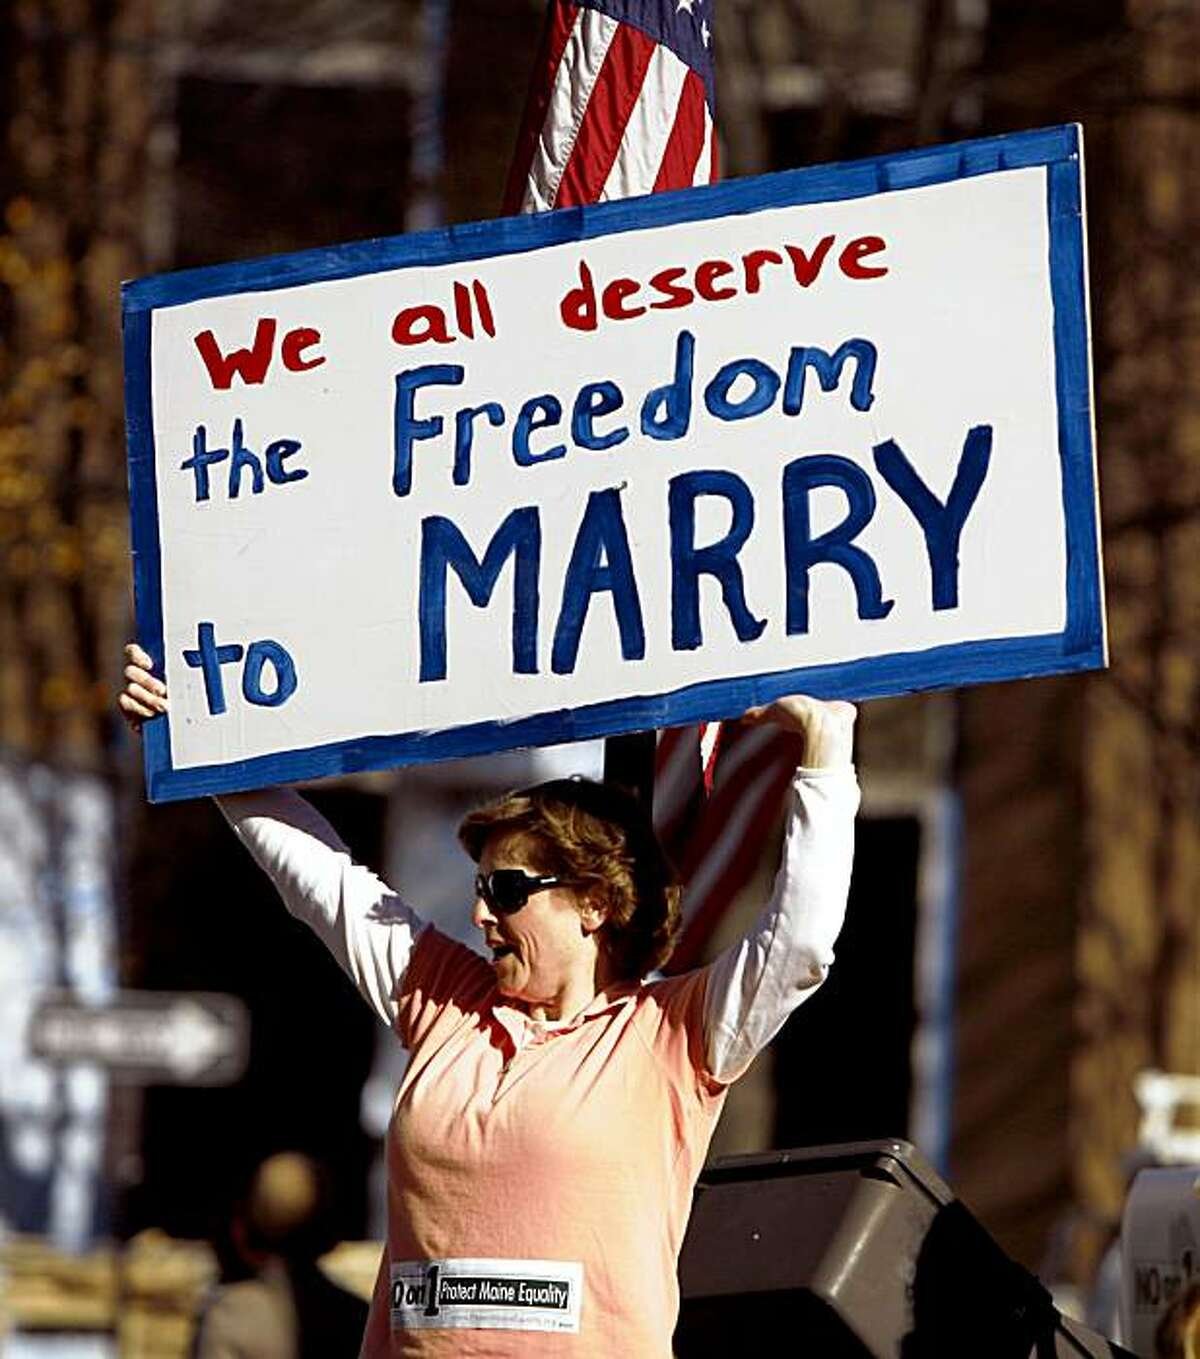 Kathy Stickel holds a sign while joining supporters who turned out for a gay-rights supporter rally the day before election day in Portland, Maine, on Monday, Nov. 2, 2009. Gay marriage has lost in every single state in which it has been put to a popular vote. Come Election Day, gay-rights supporters are hoping to make Maine the exception. (AP Photo/Pat Wellenbach)